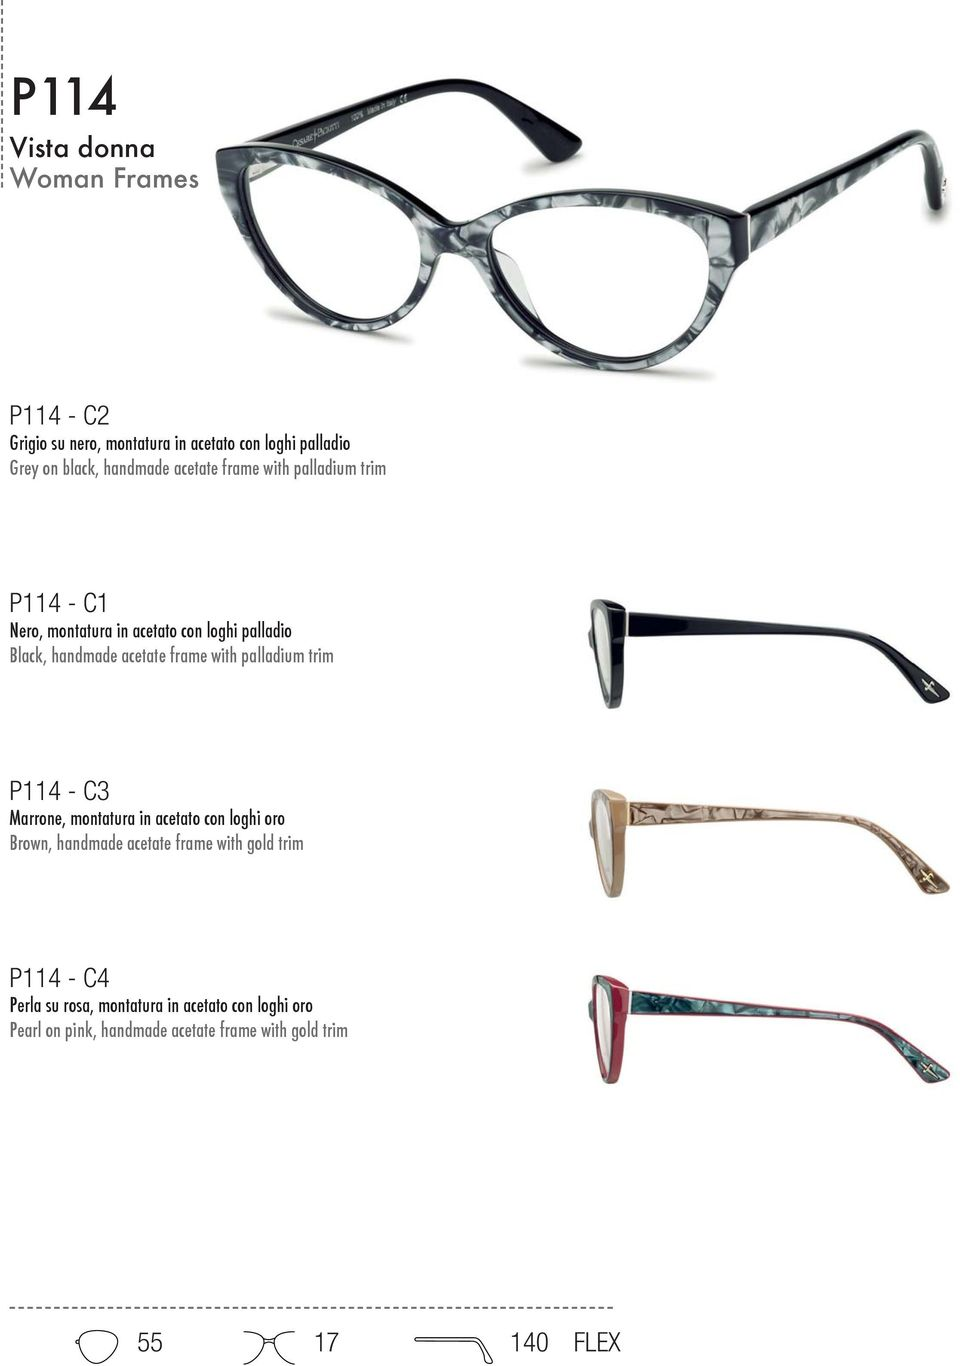 palladium trim P114 - C3 Marrone, montatura in acetato con loghi oro Brown, handmade acetate frame with gold trim P114